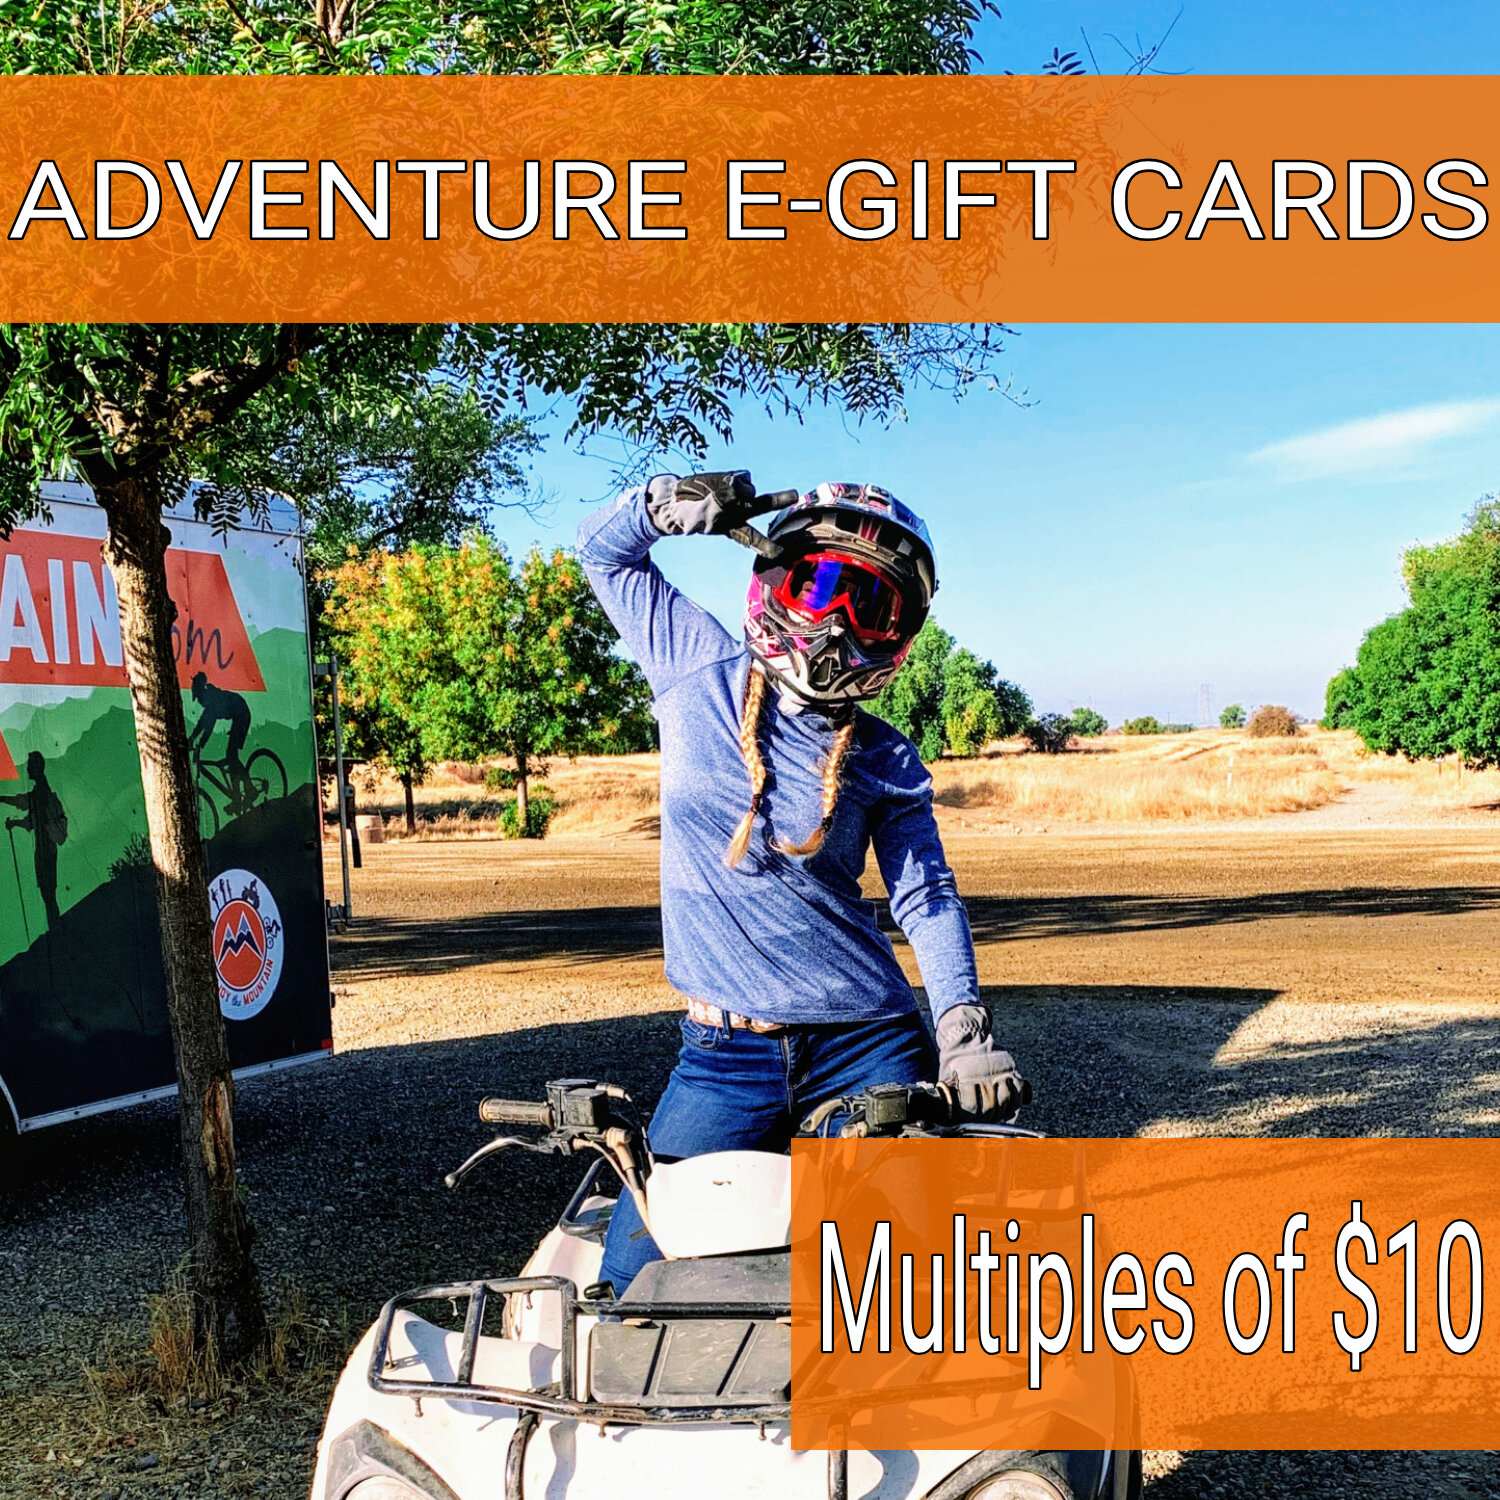 E-GIFT CARD - Does not expire. Any amount in multiples of $10. Can be used towards any adventure offered at each location. Can only be redeemed by making reservation online